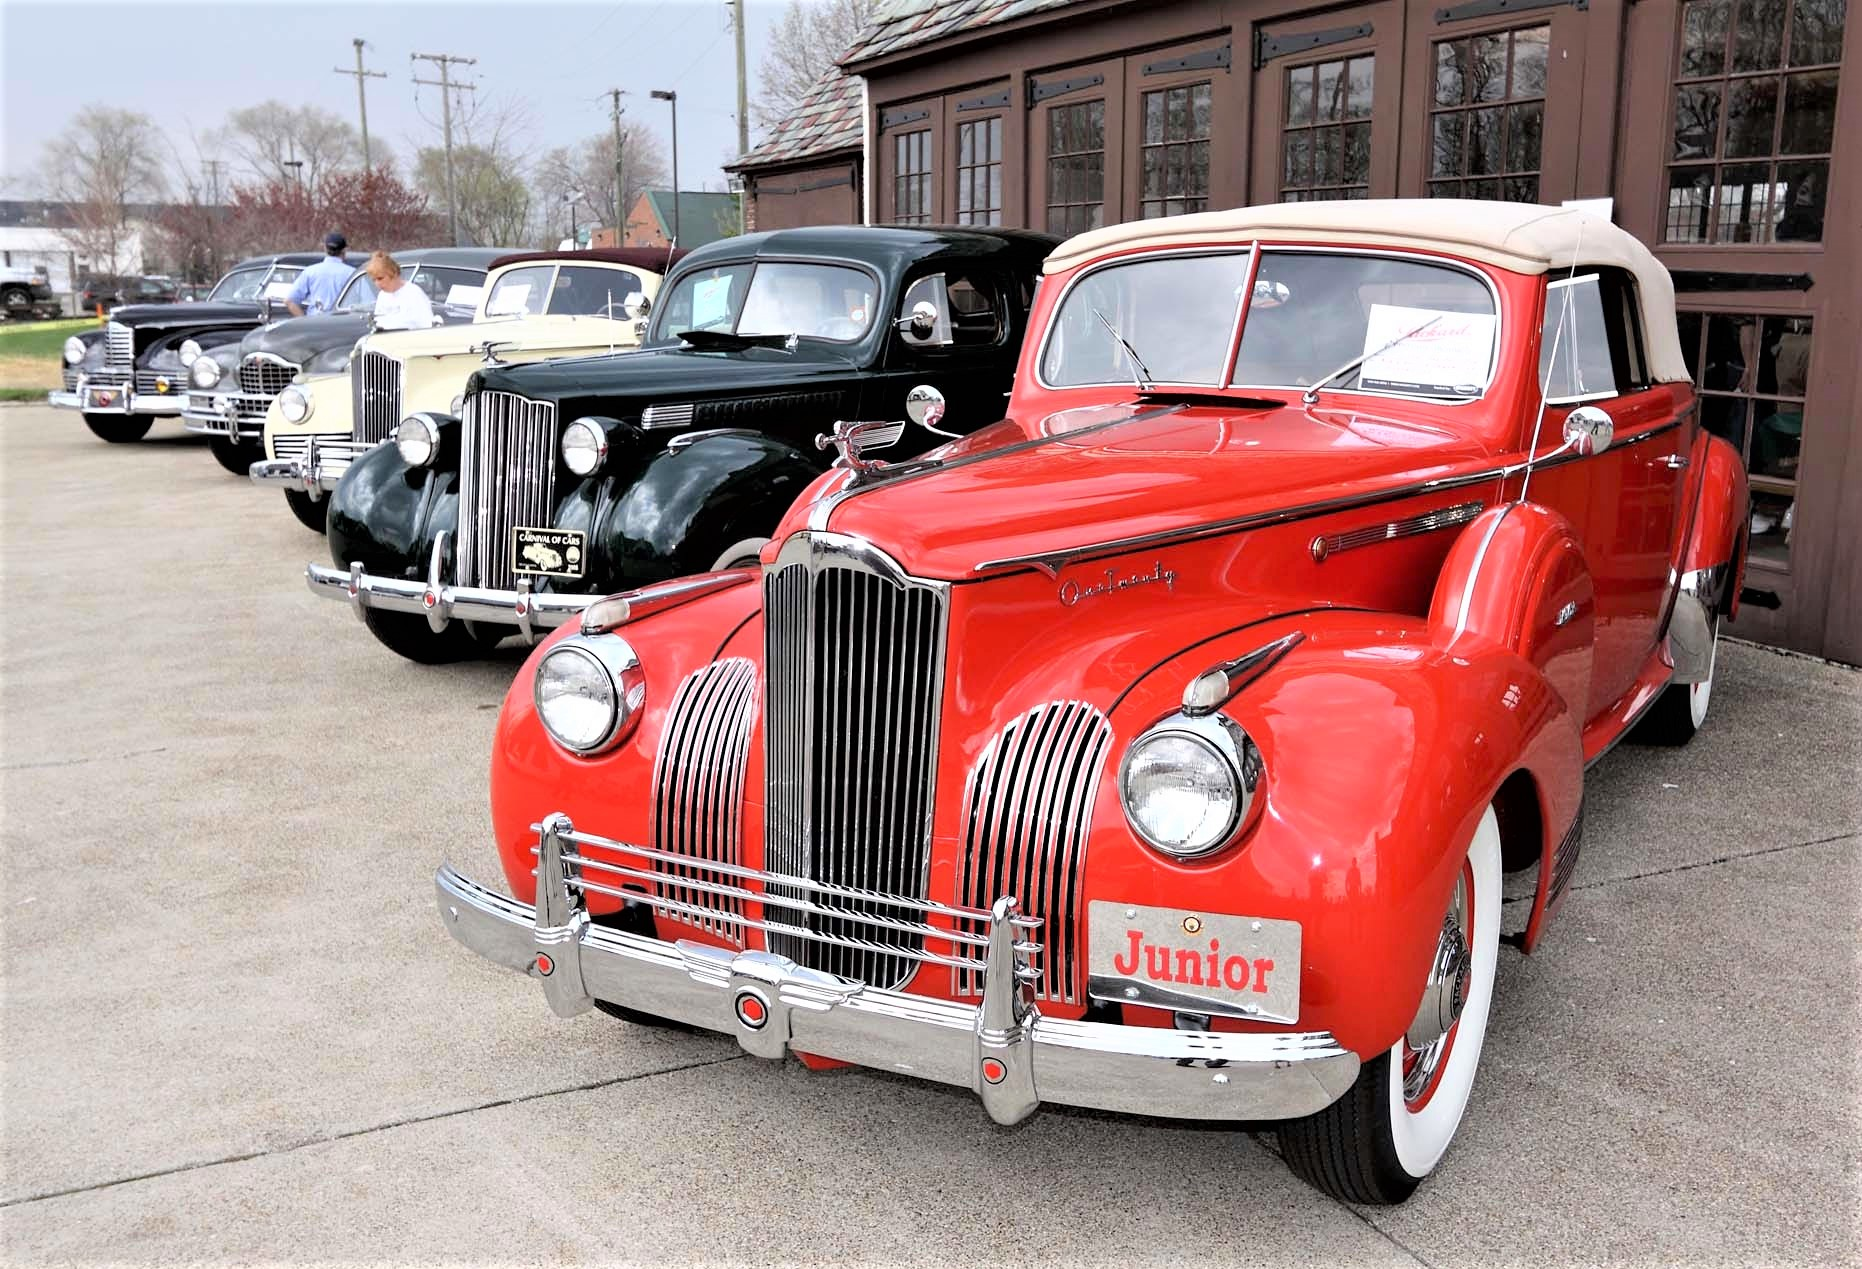 Classic Packards on display at the Packard Proving Grounds | Cars R Stars